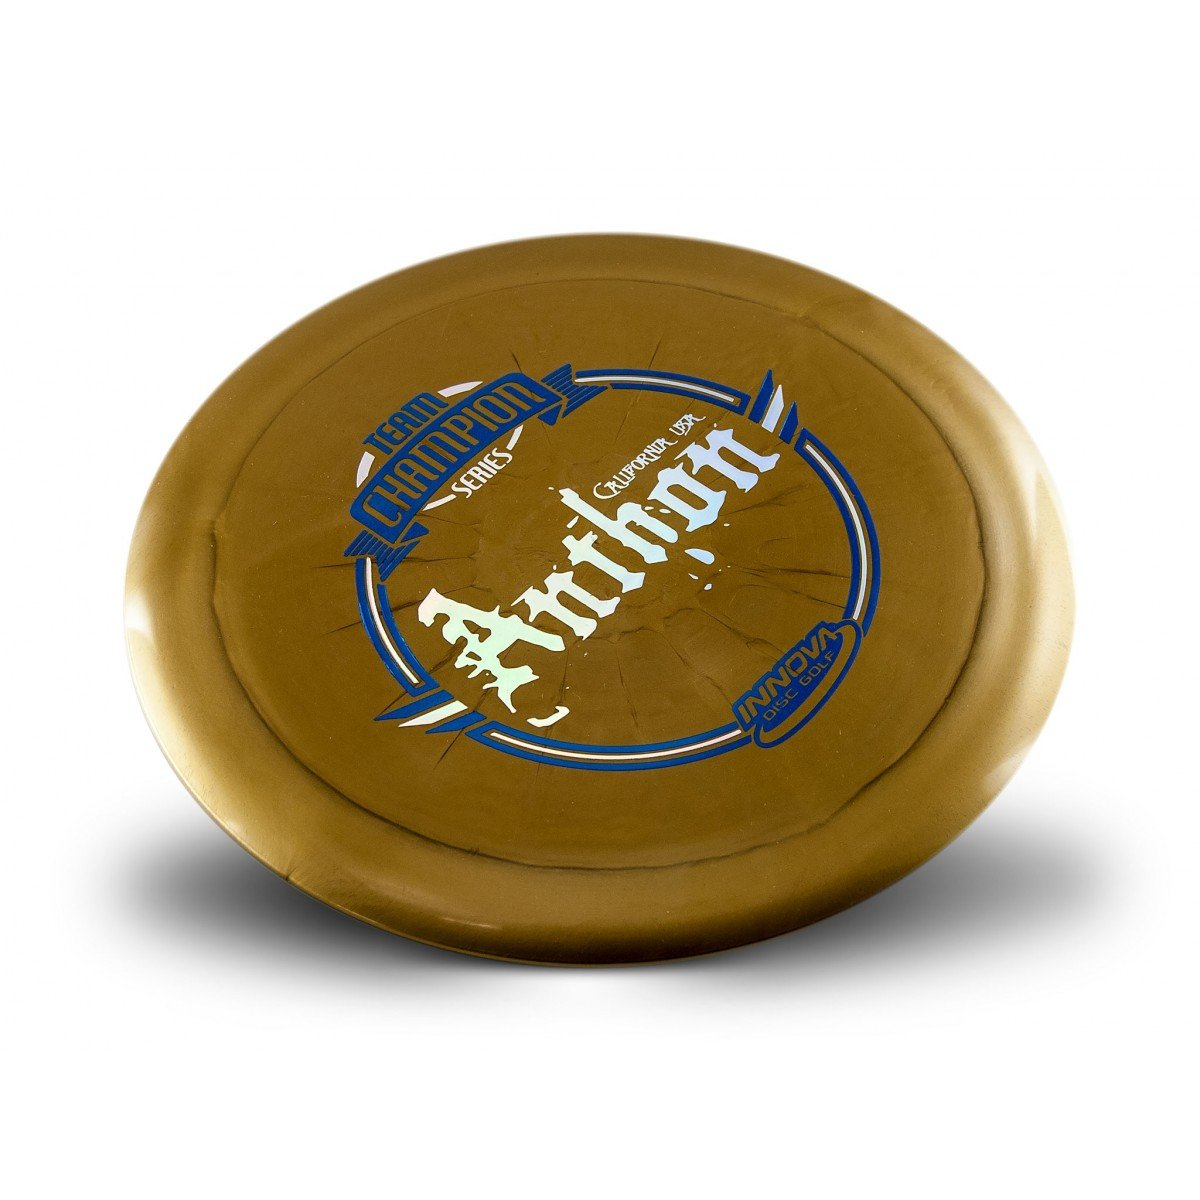 Innova Limited Edition Team Champion Tour Series Josh Anthon Shimmer Star Destroyer Disc Golf Distance Driver (Stamp colors may vary) (Gold)